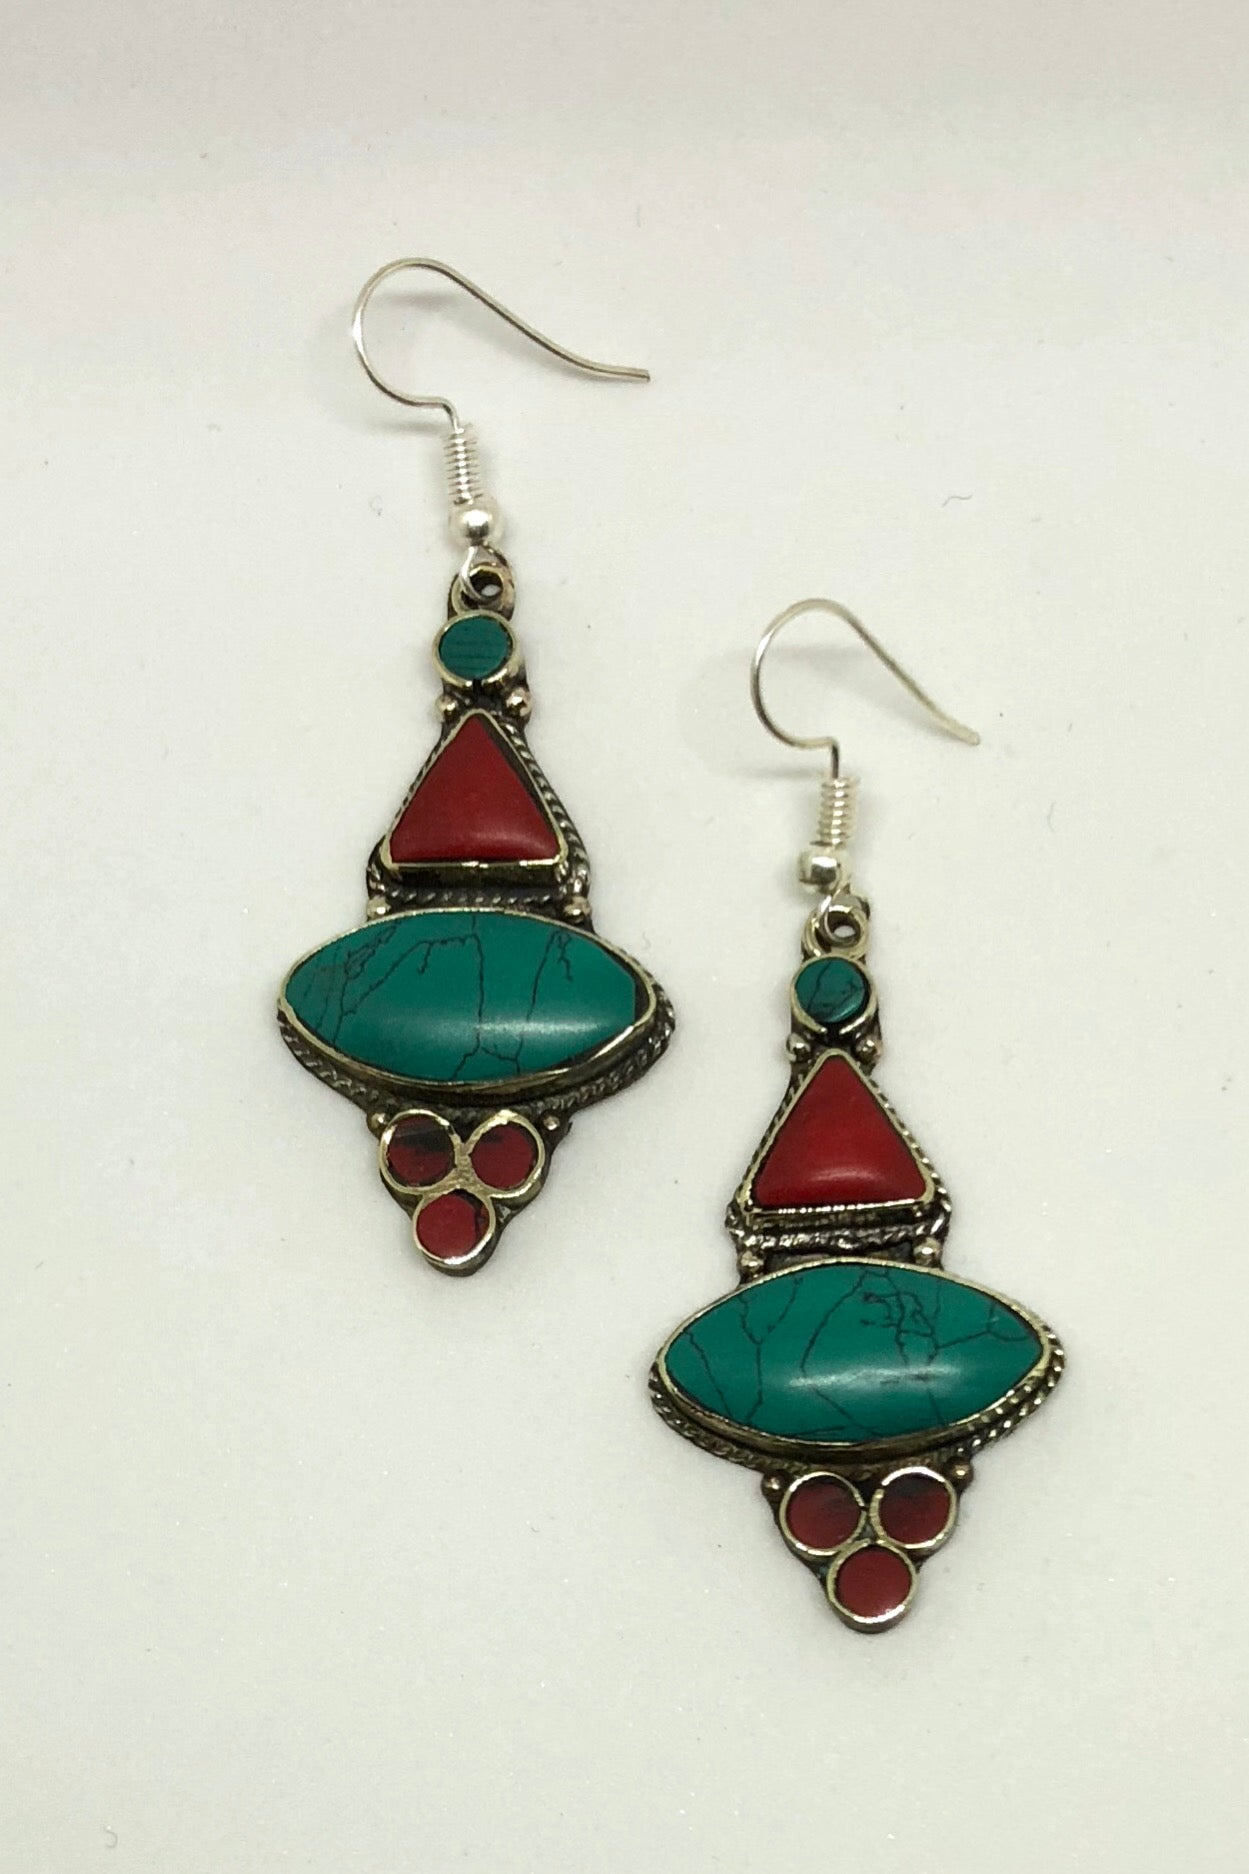 Earrings Paloma Inlaid in Faux Turquoise and Coral Colour, festival style earrings